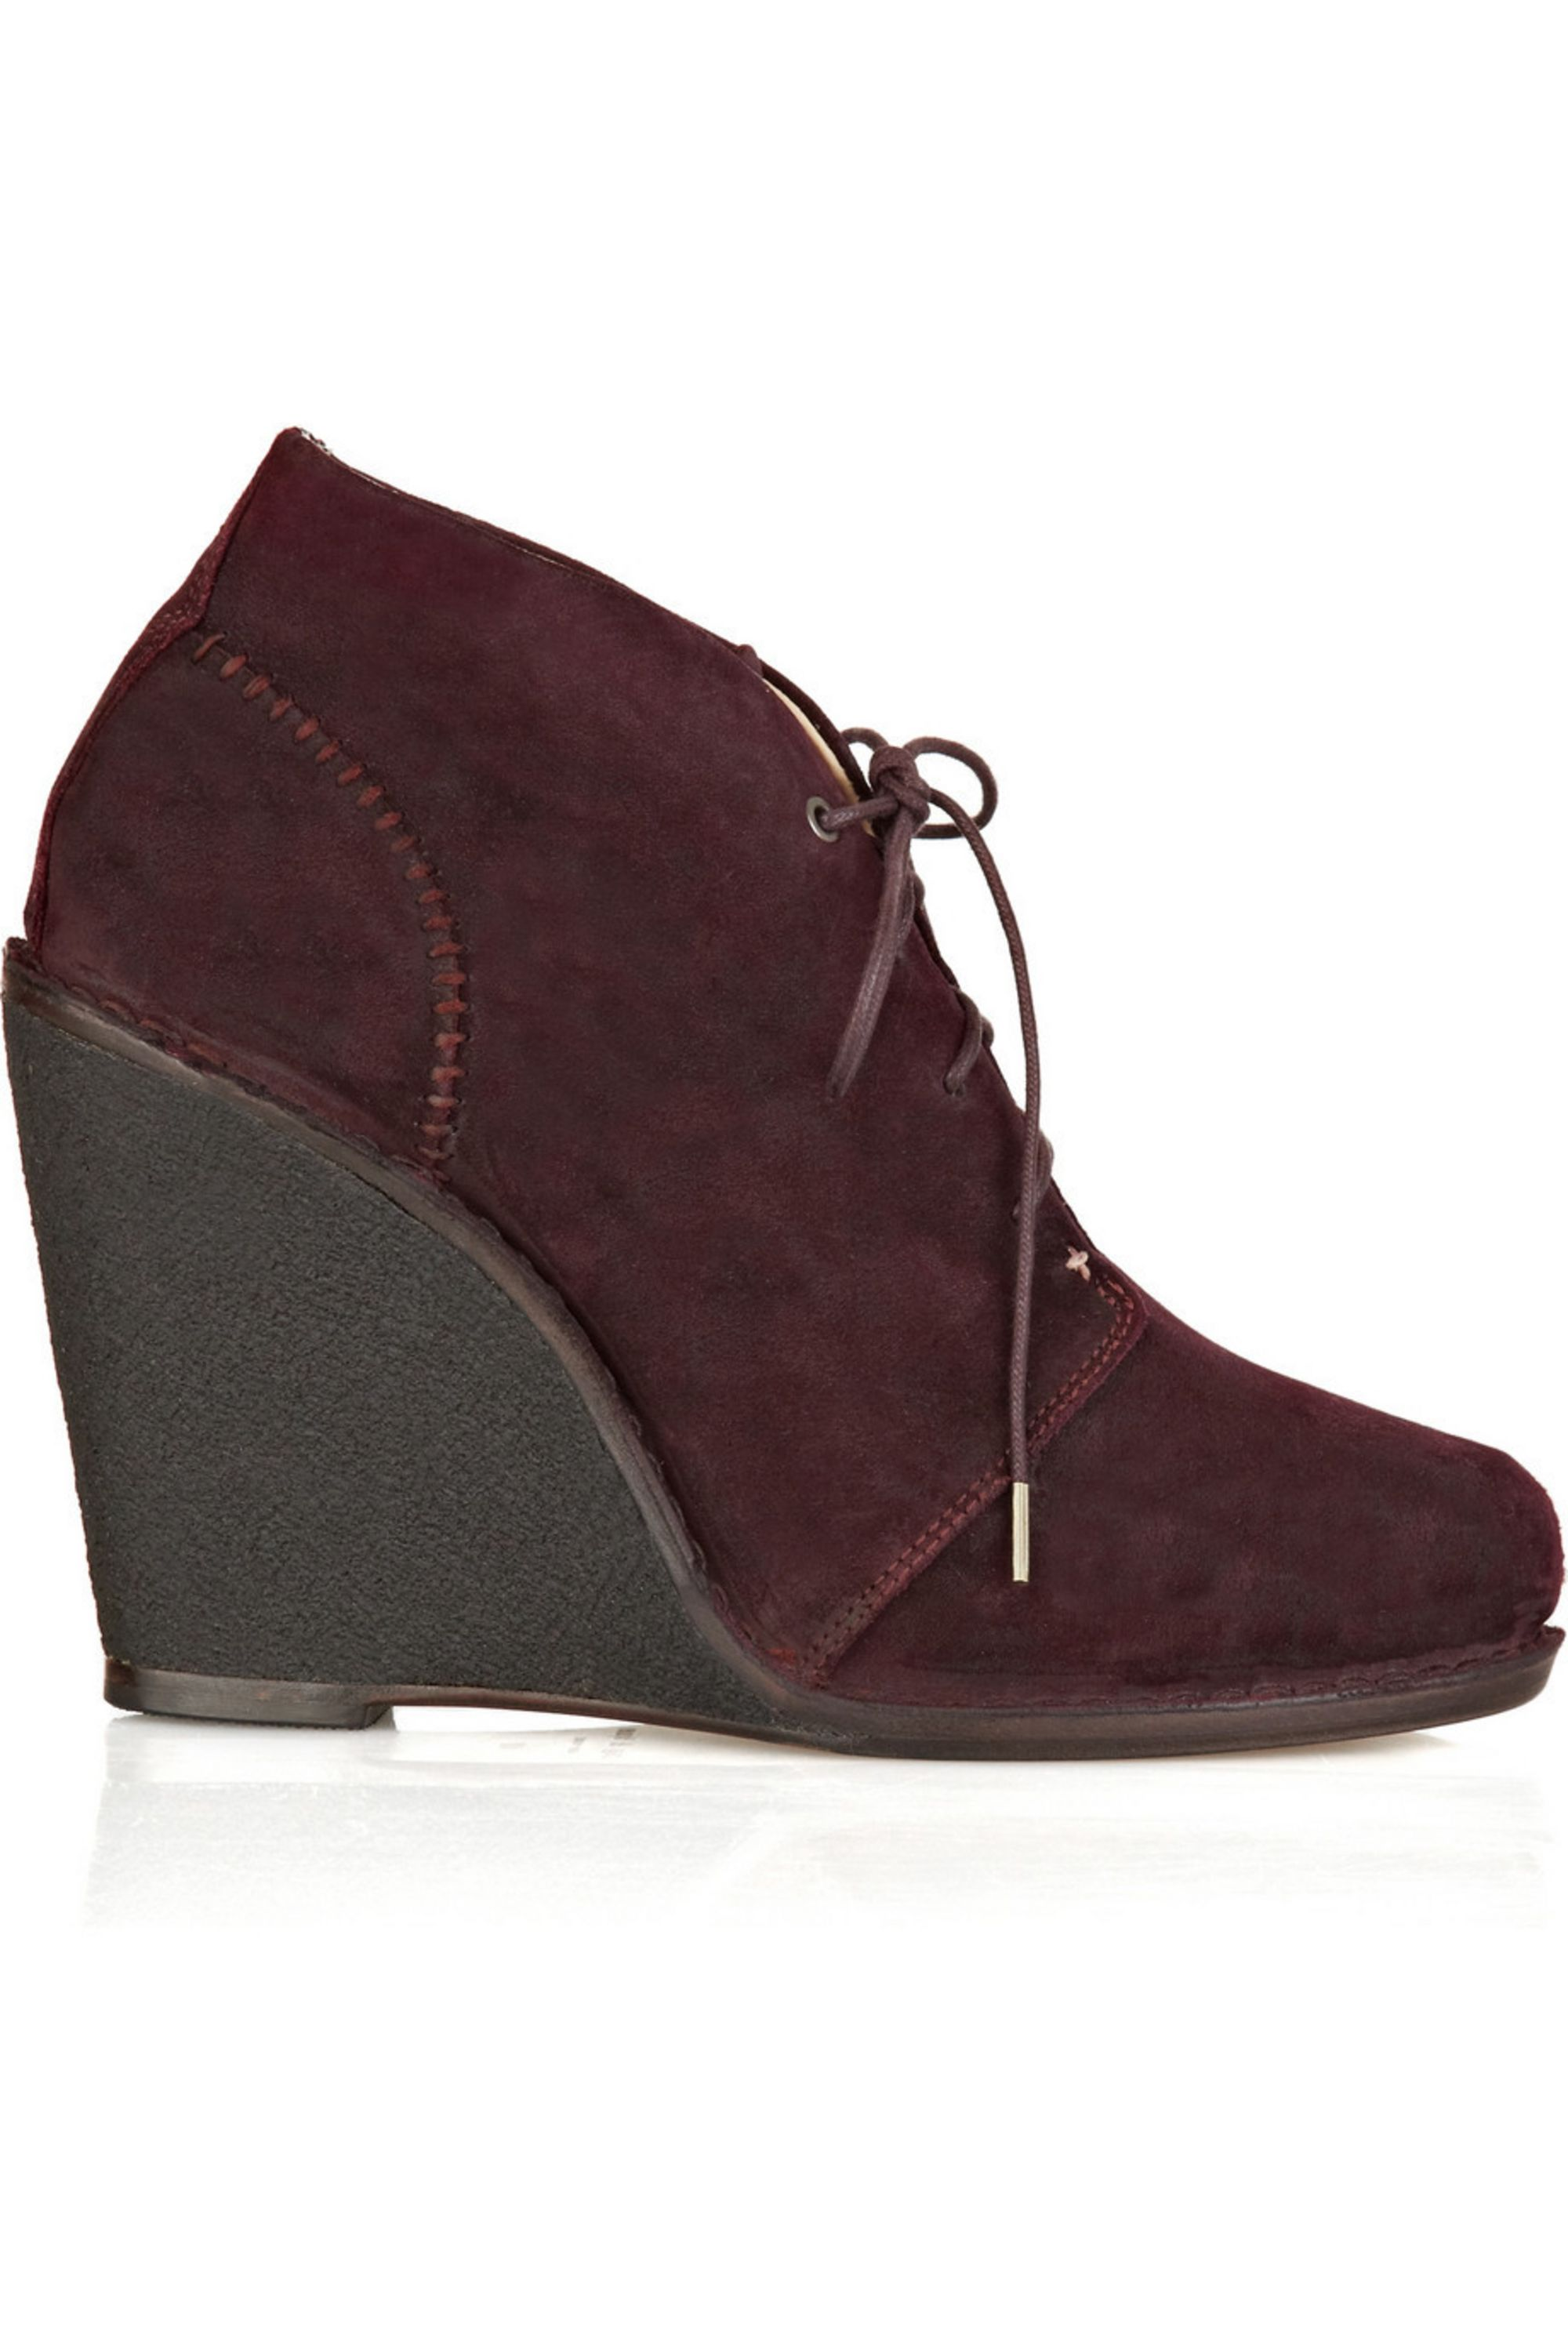 rag & bone Odval Desert suede wedge ankle boots